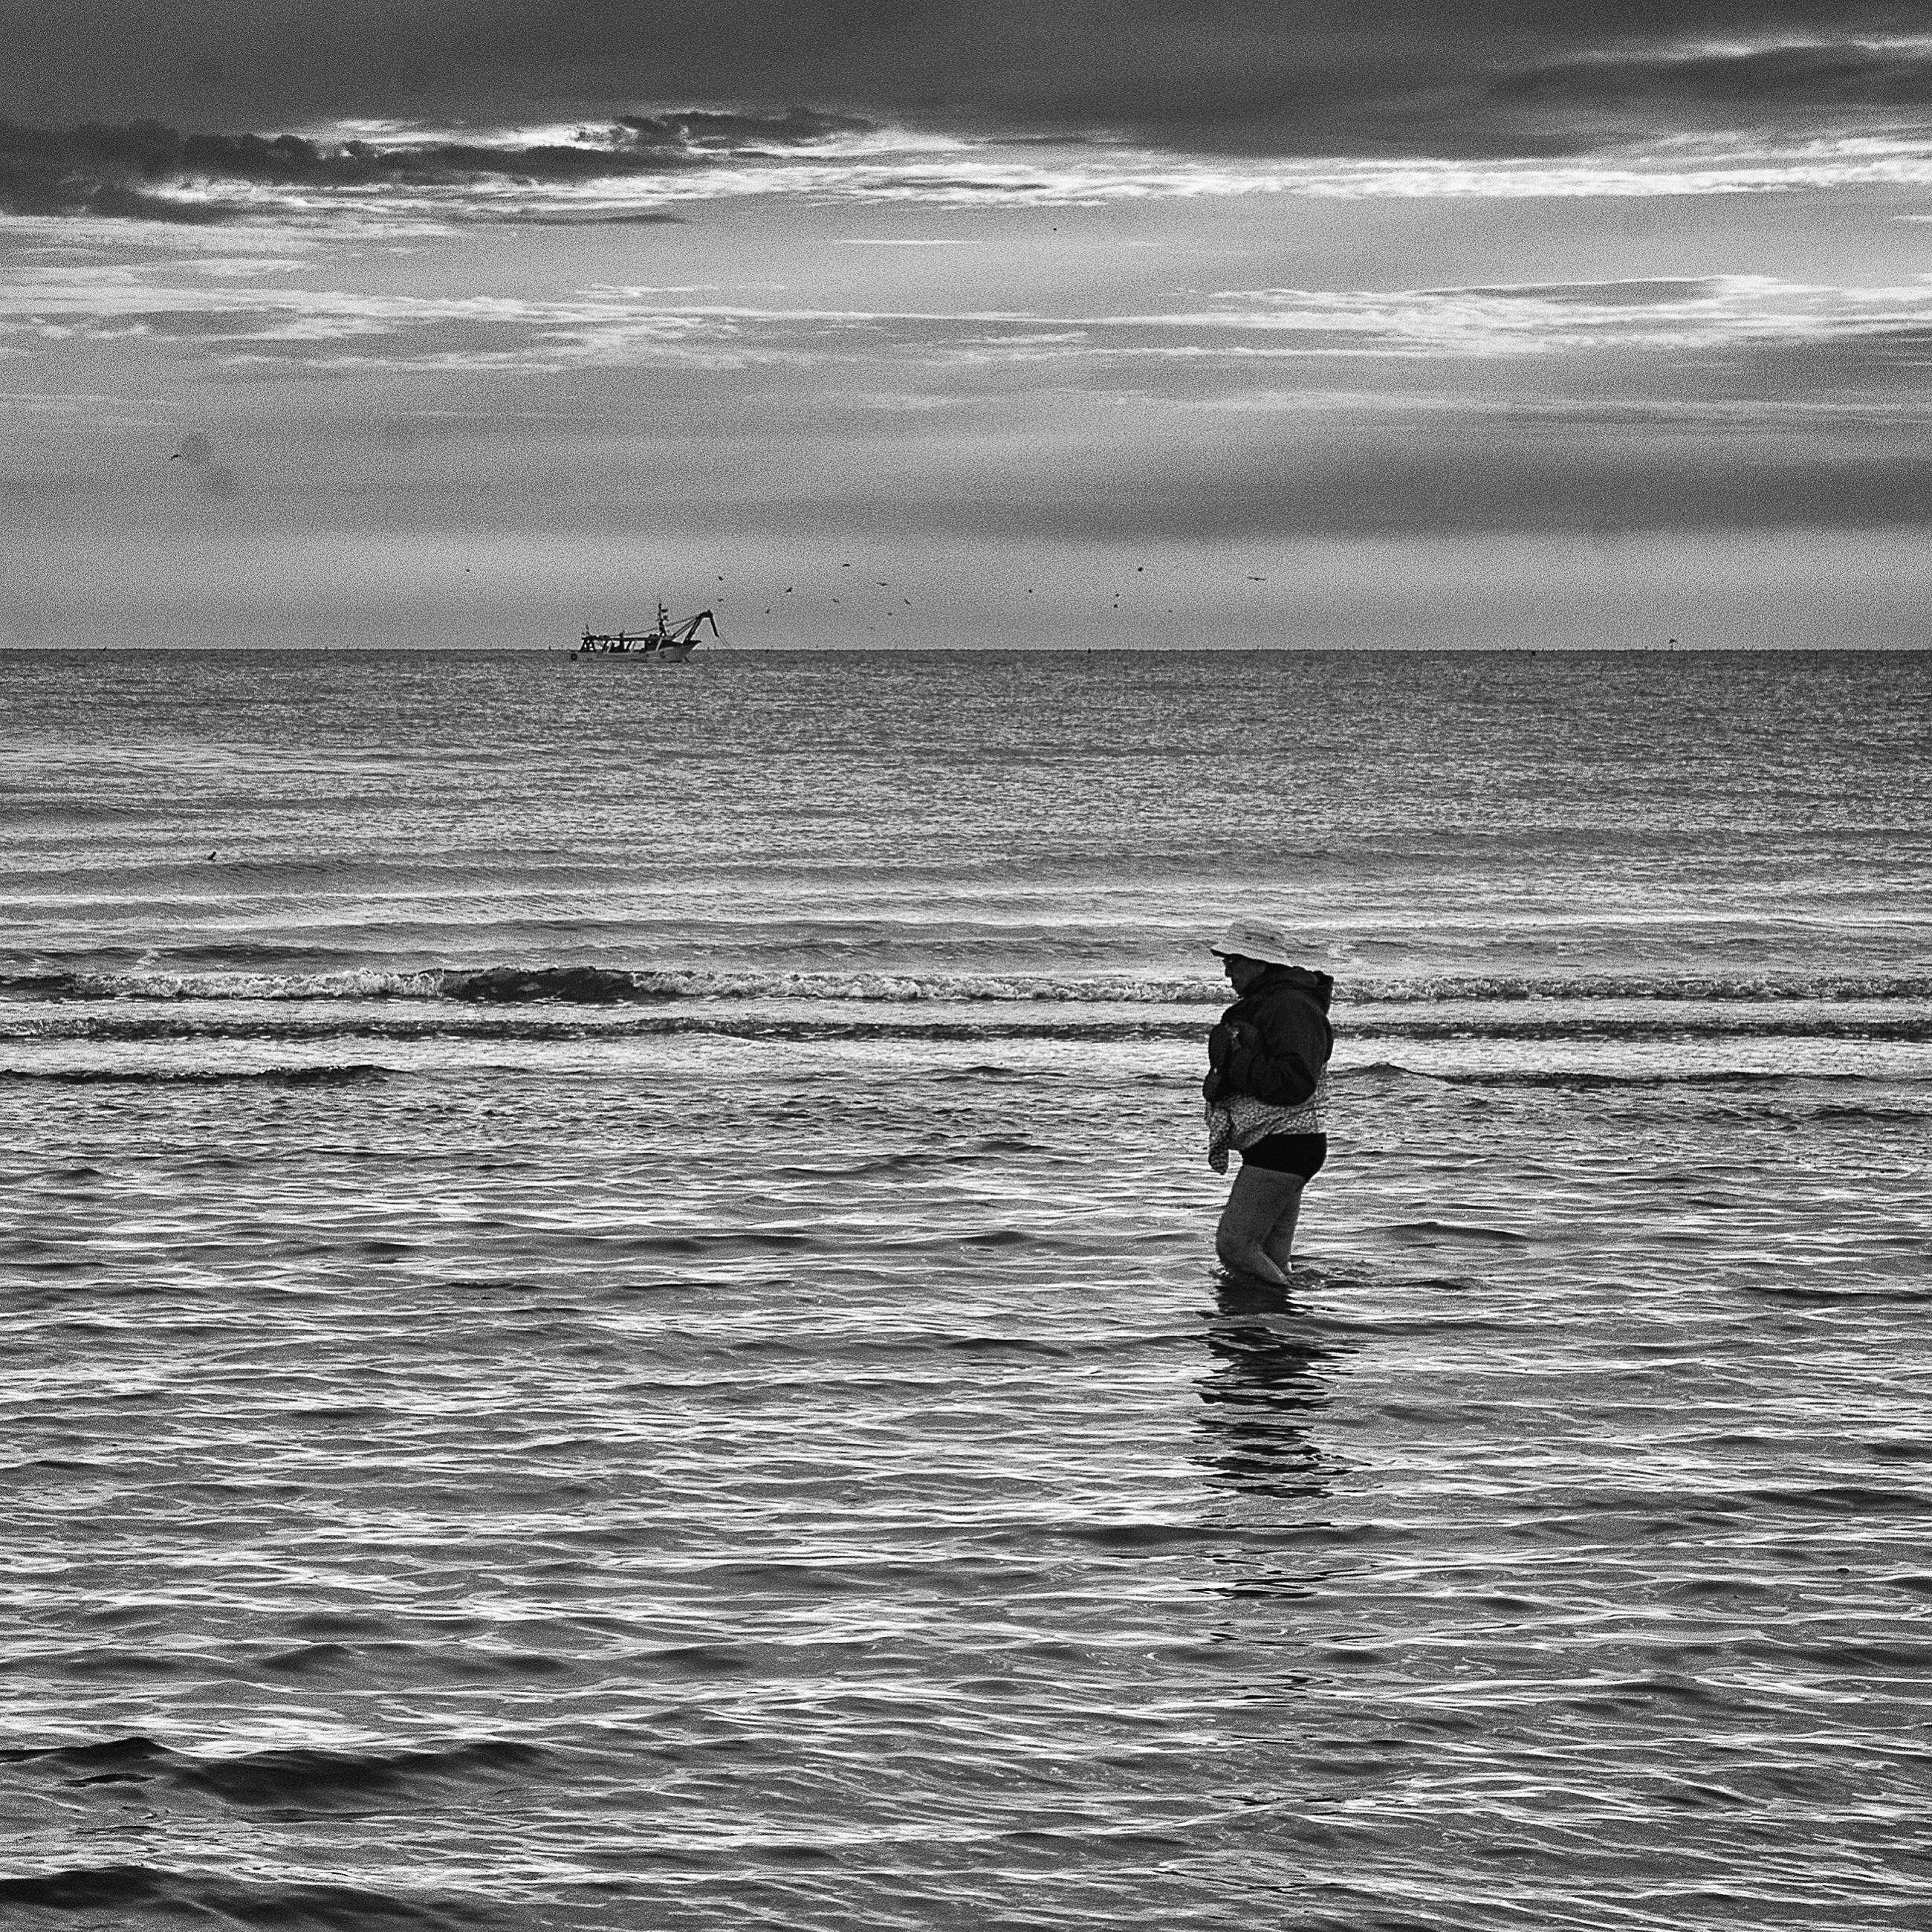 sea, water, horizon over water, lifestyles, beach, leisure activity, tranquility, sky, tranquil scene, rear view, shore, men, scenics, silhouette, standing, beauty in nature, full length, nature